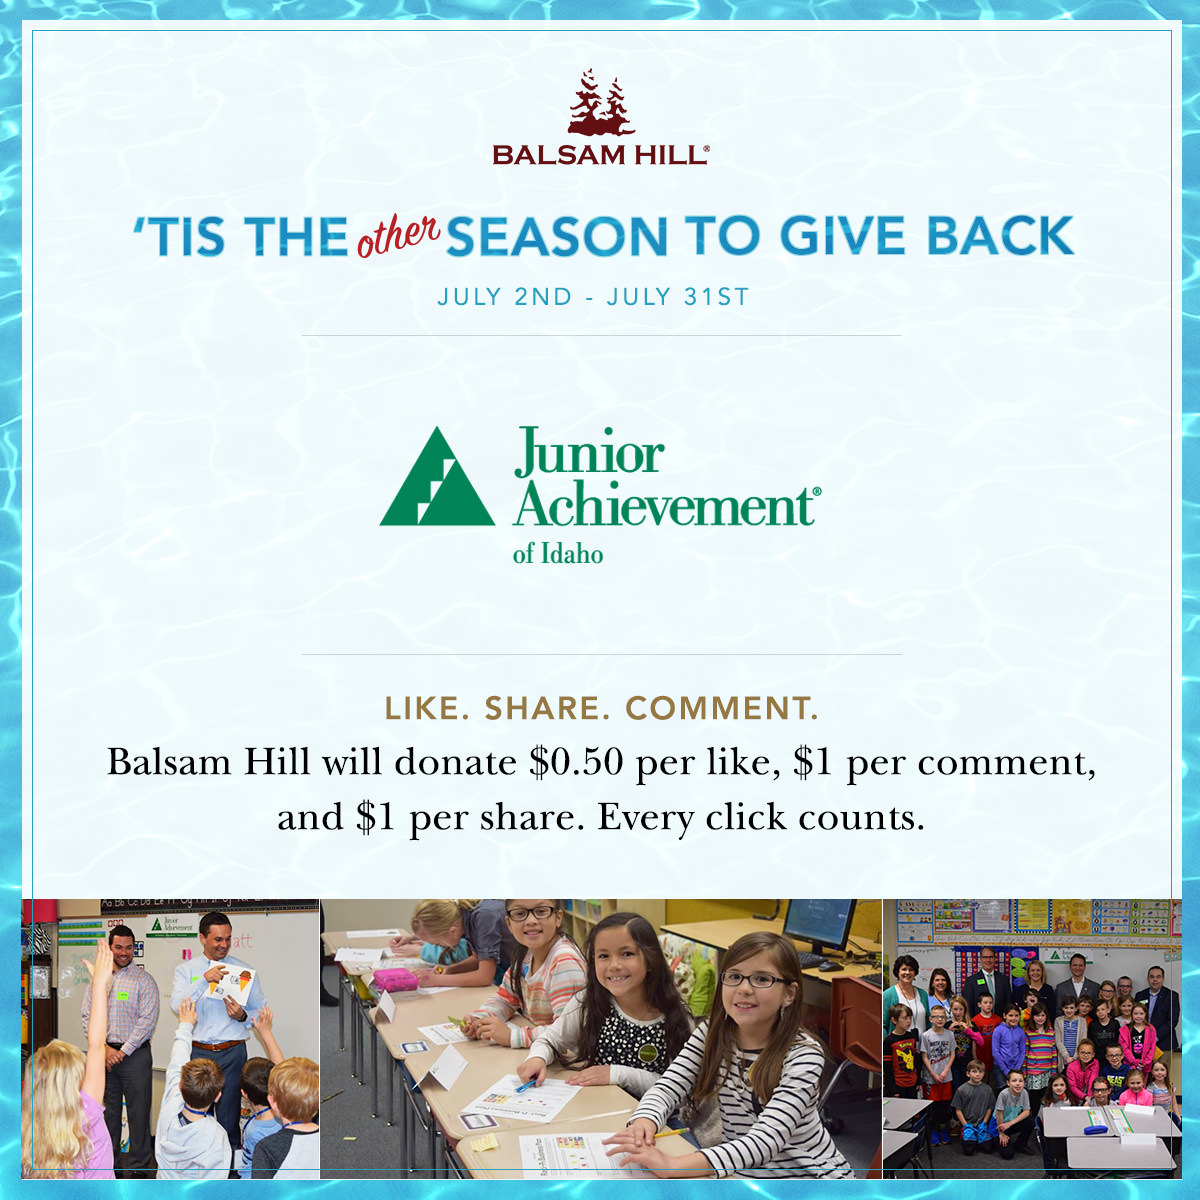 Balsam Hill A Charitable Christmas in July